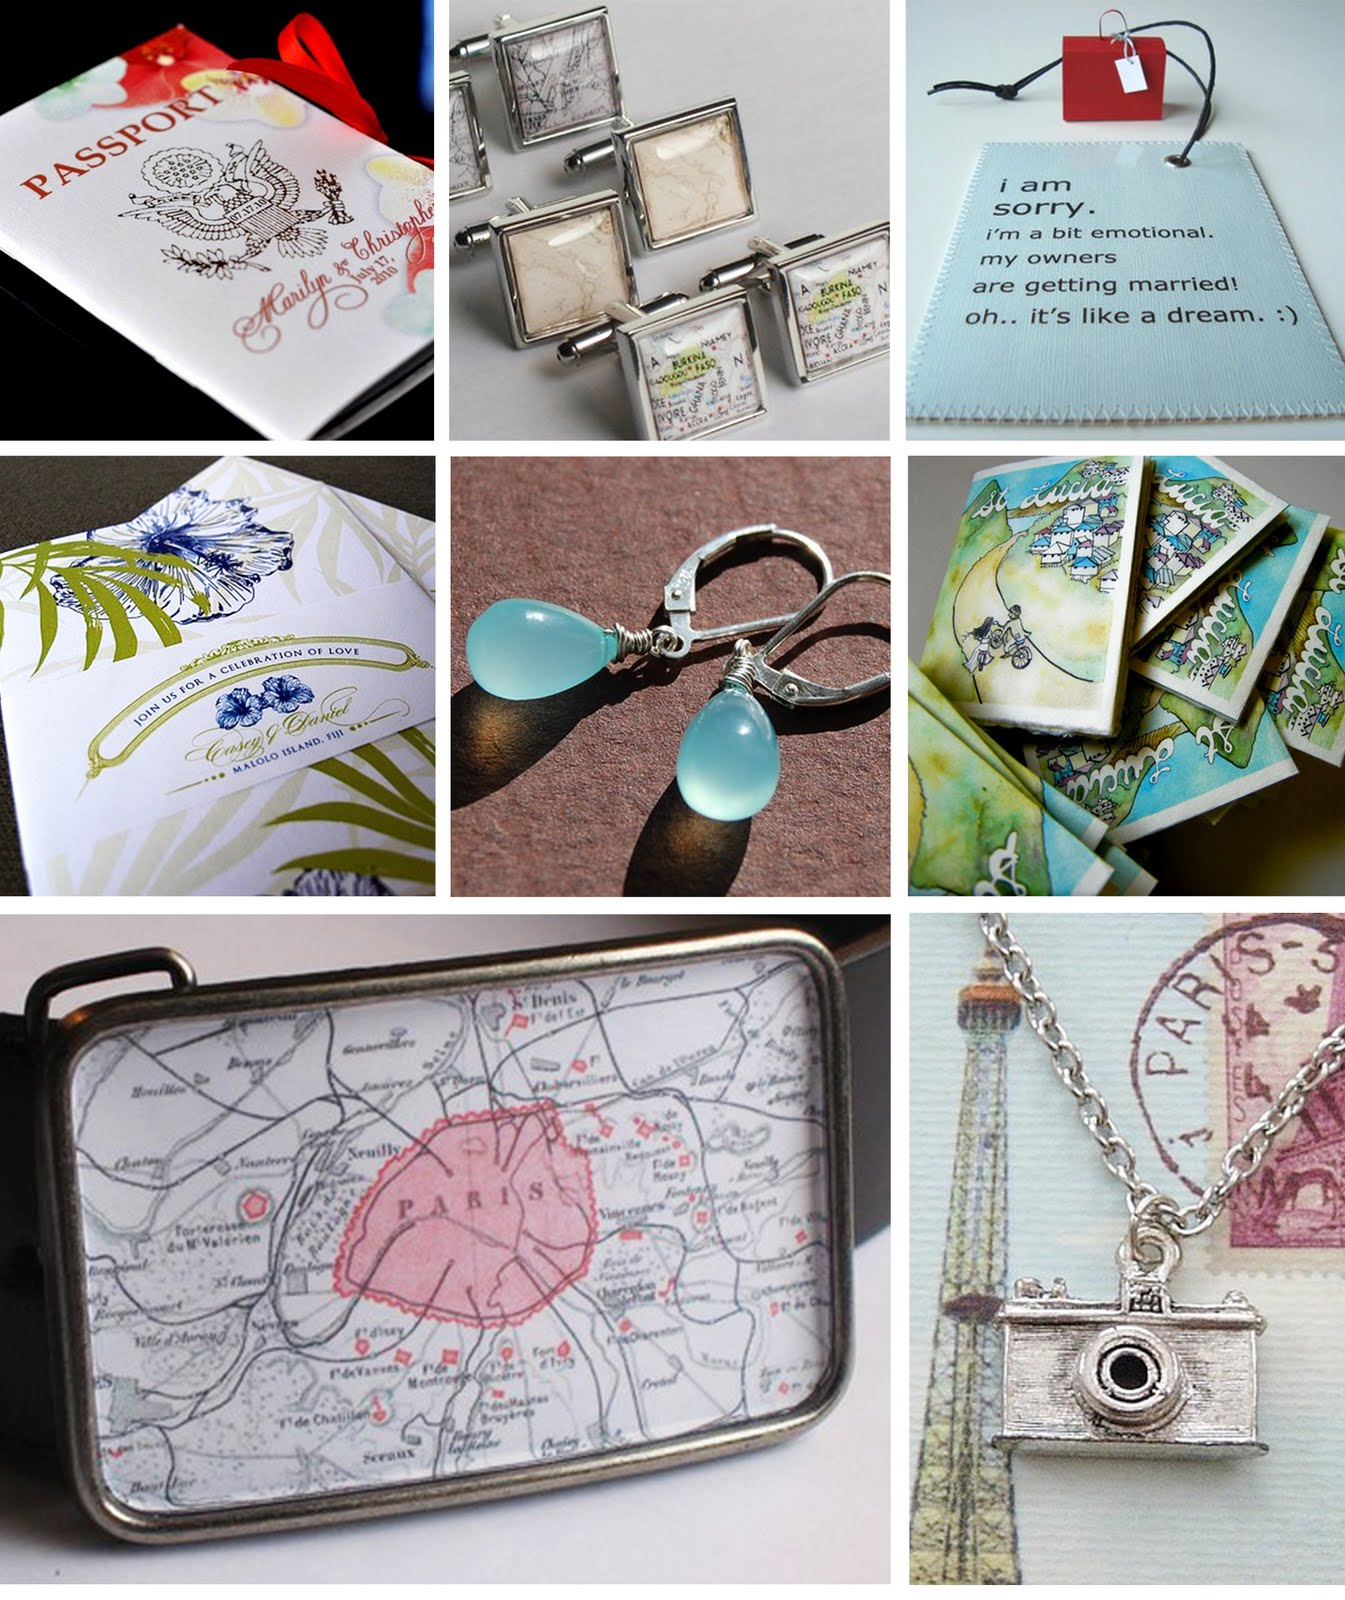 Gift Ideas For Bridesmaids Destination Wedding : interesting items for a destination wedding. Gifts for your bridal ...